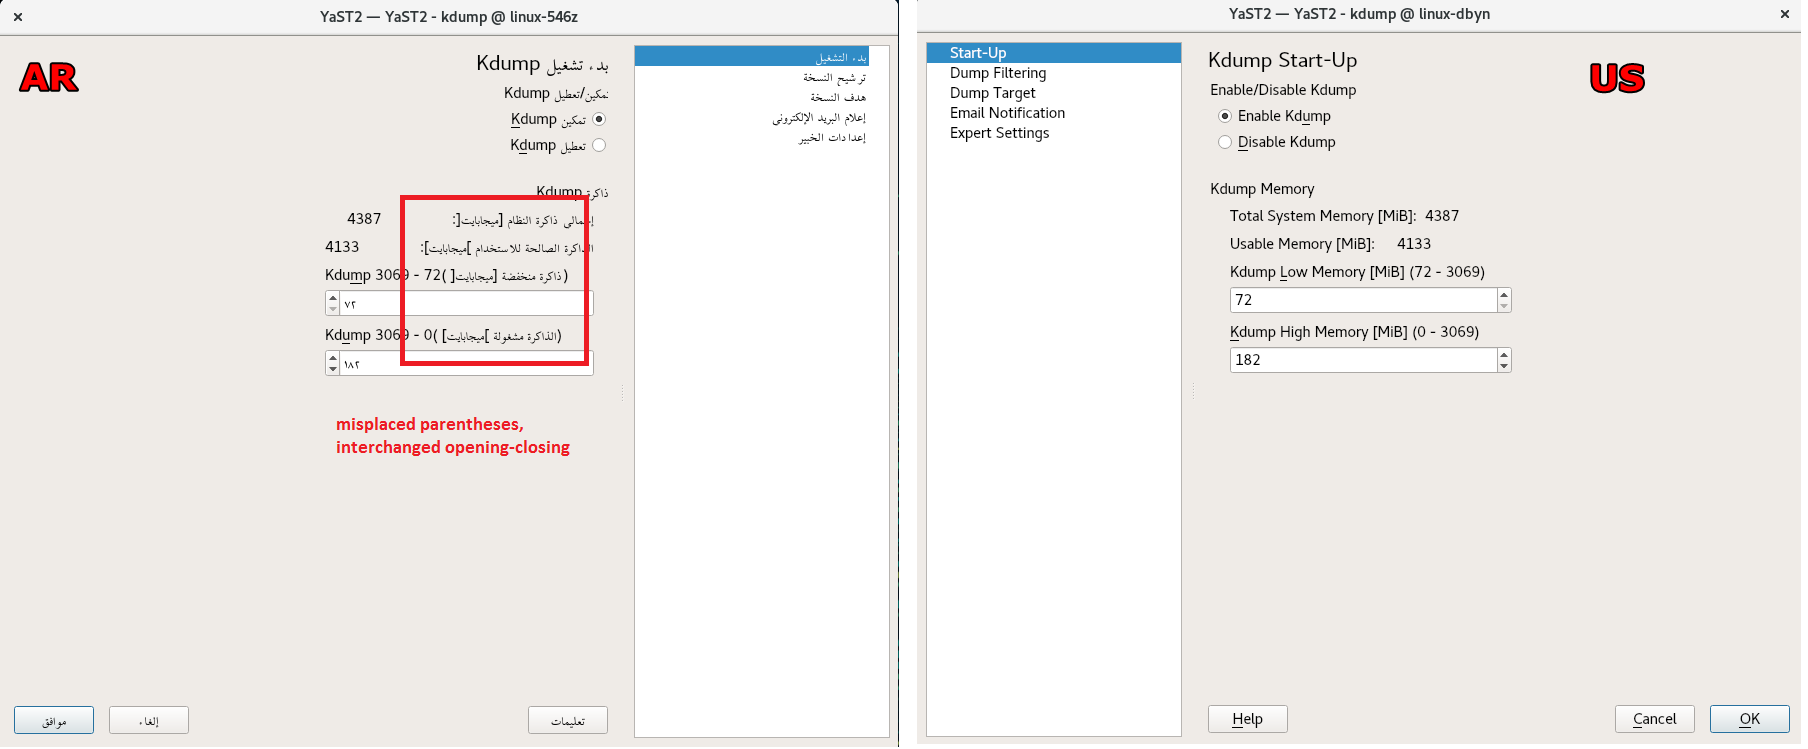 comparison of Arabic and English screen contents